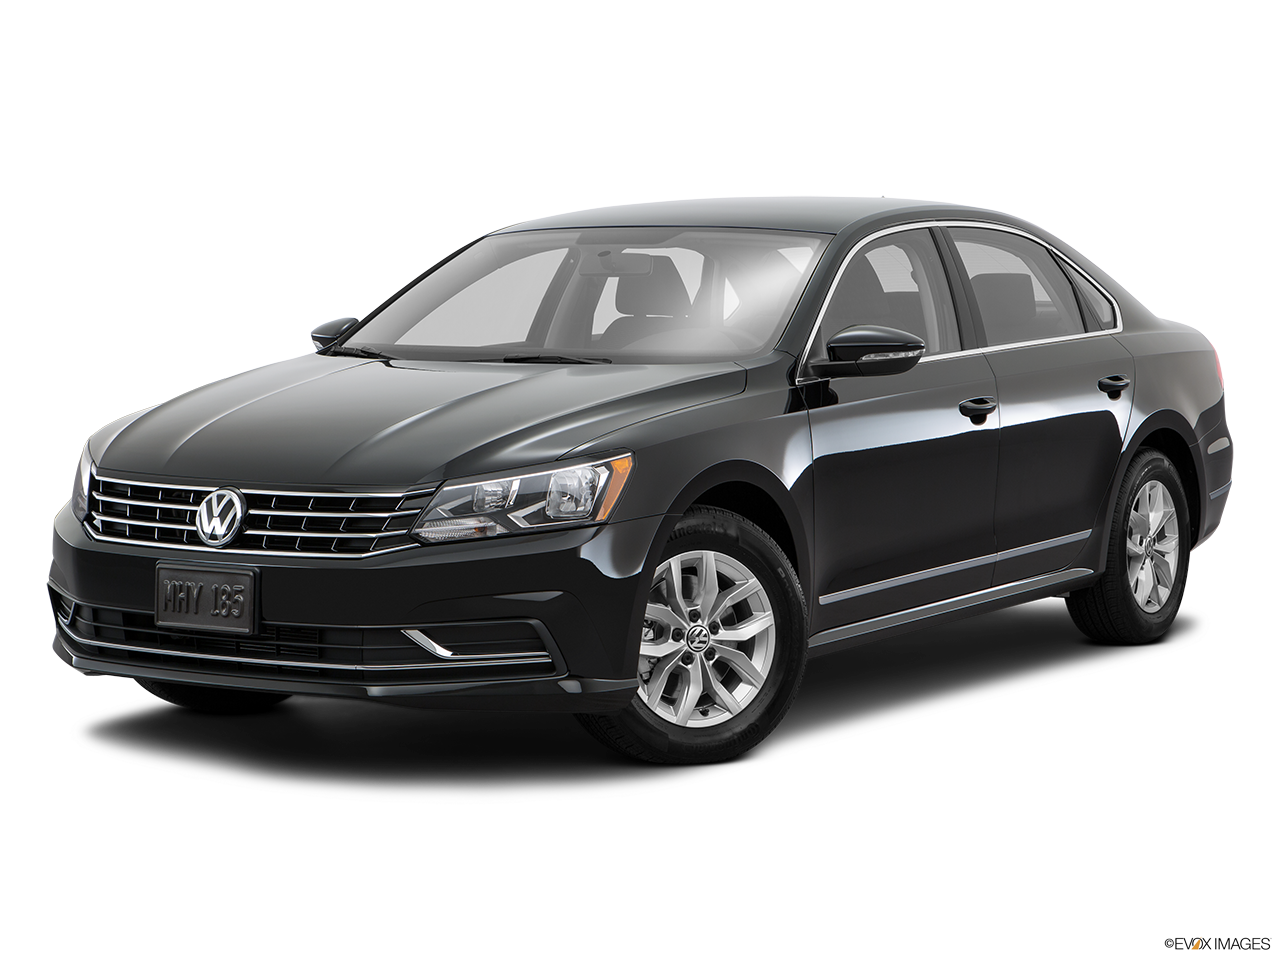 2016 Volkswagen Passat Dealer Serving Los Angeles New Century Volkswagen